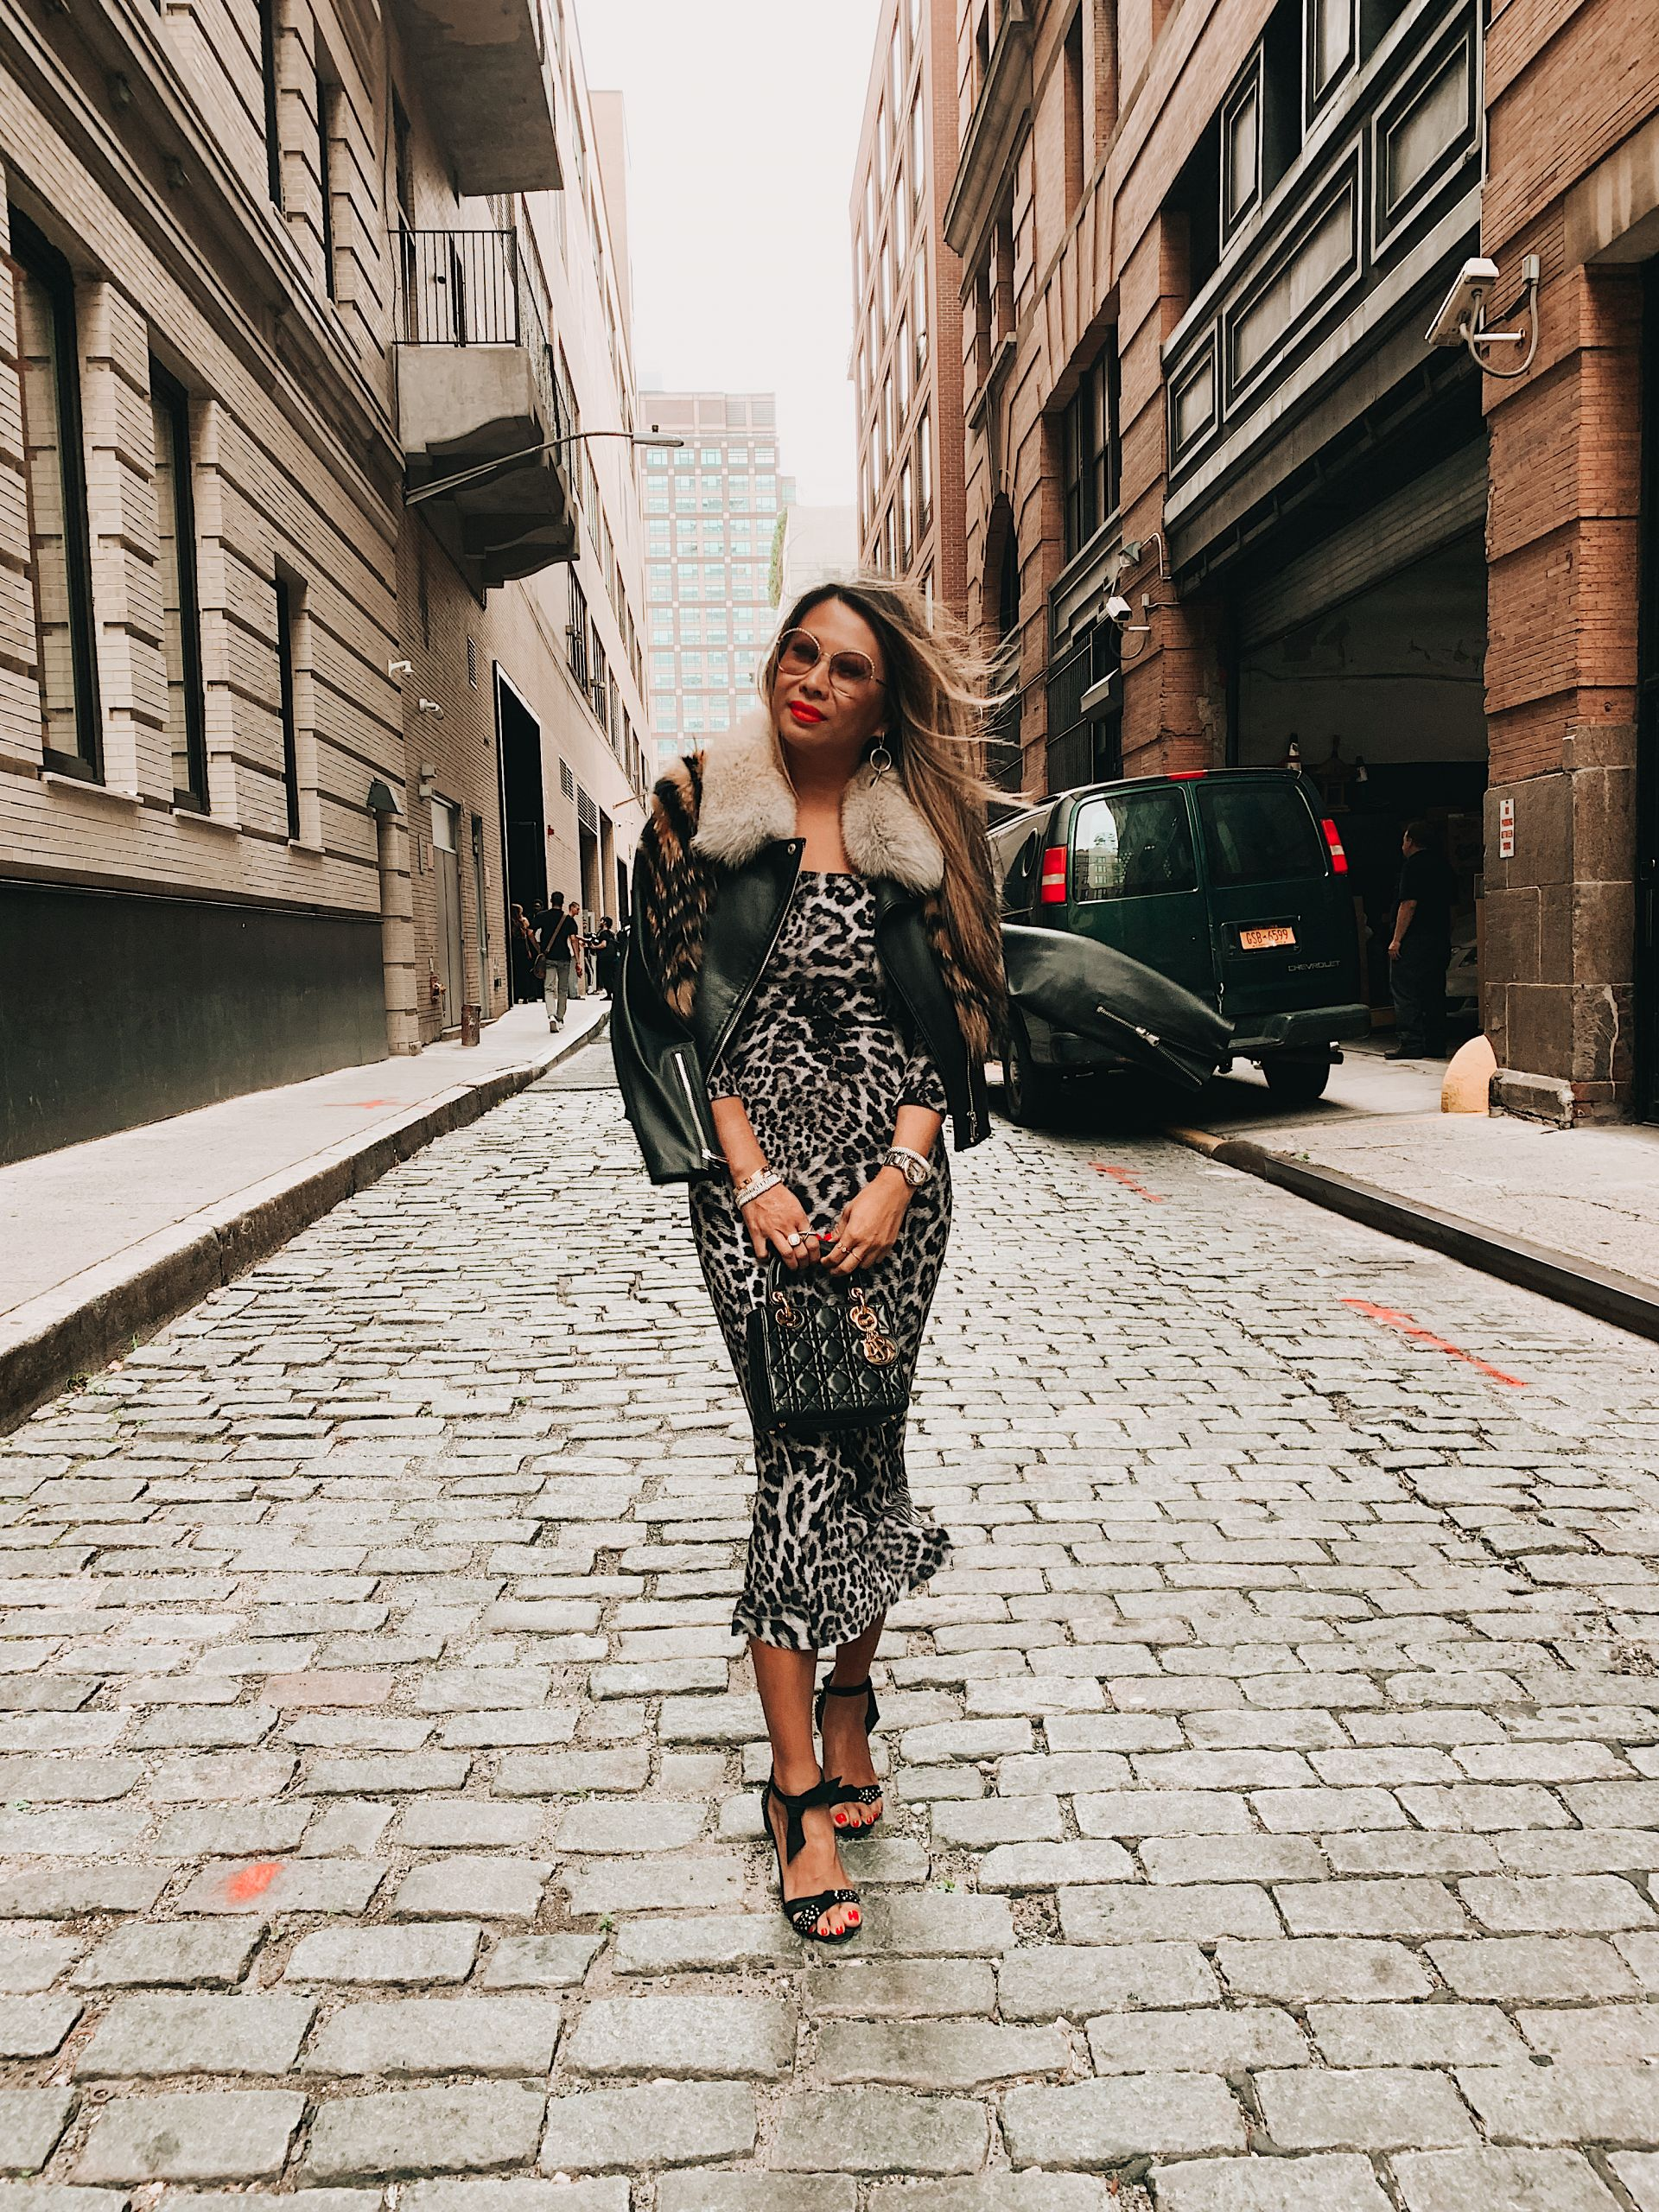 Norma Kamali Off Shoulder Fishtail Dress, NYFW, NYFW 2019, New York fashion week 2019, New York fashion week as a blogger, truths about NYFW, fashion week, street style, New York style, outfit ideas, blogger, travel blogger, advice from a blogger, blogging advice, blogging tips, influencer tips, influencer advice, tips from an influencer on New York fashion week, fashion blogger, Jennifer woman, Red Soles and Red Wine